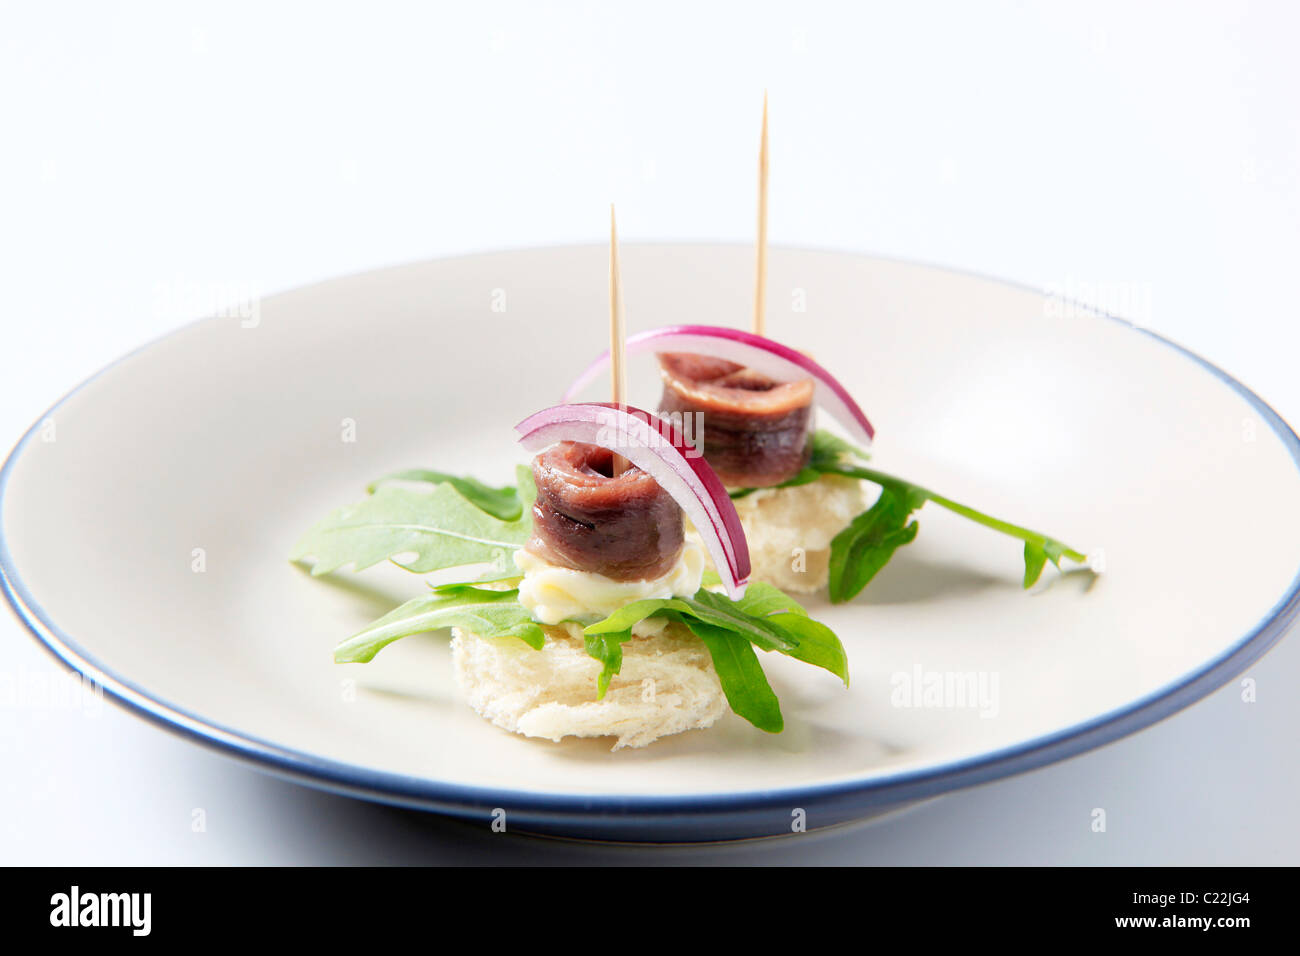 Anchovy canapes garnished with leaves of arugula - Stock Image